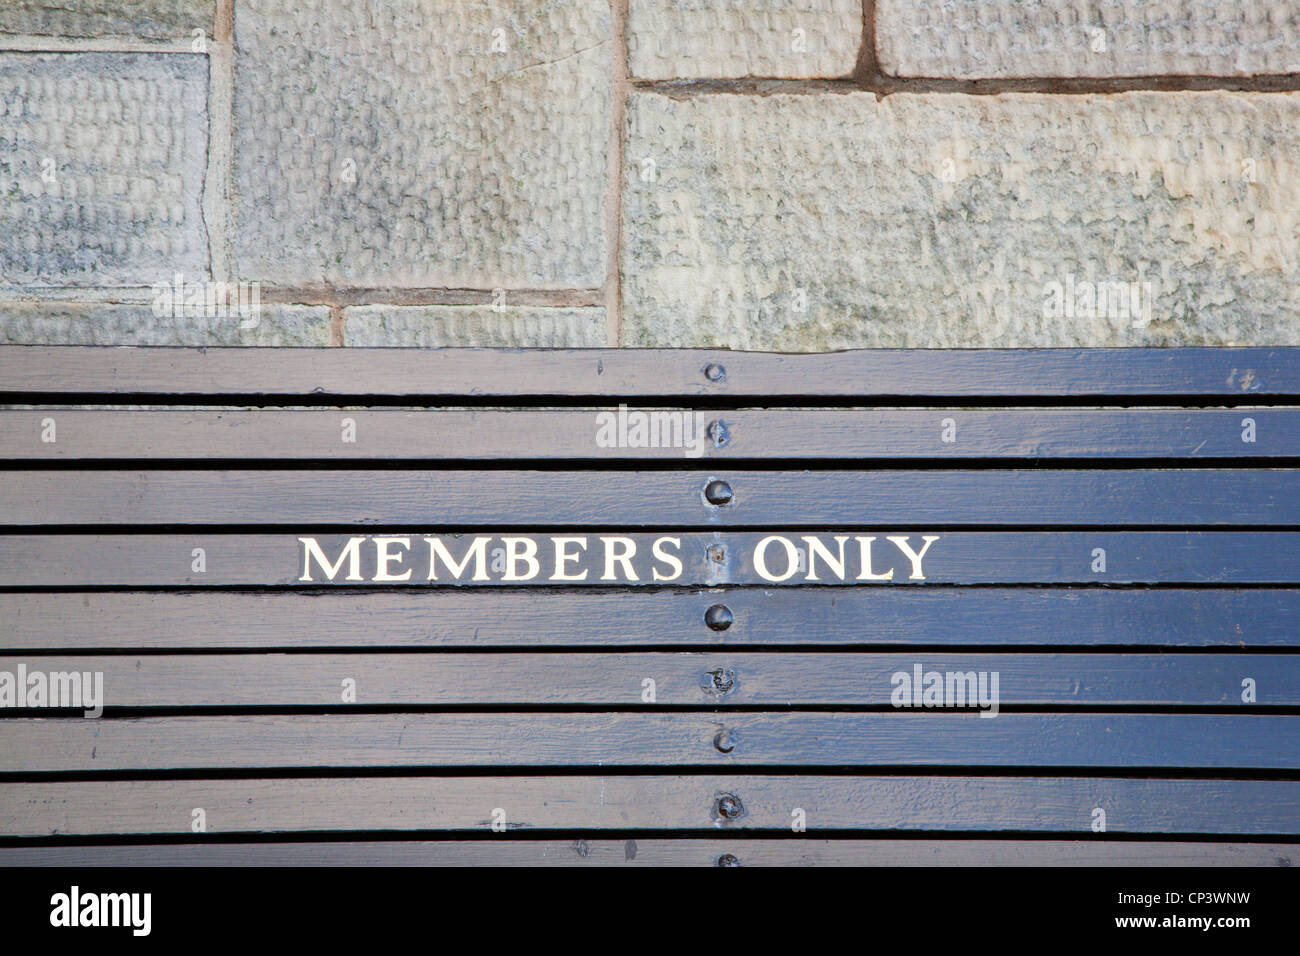 Members Only Bench Royal and Ancient Golf Club St Andrews Fife Scotland - Stock Image